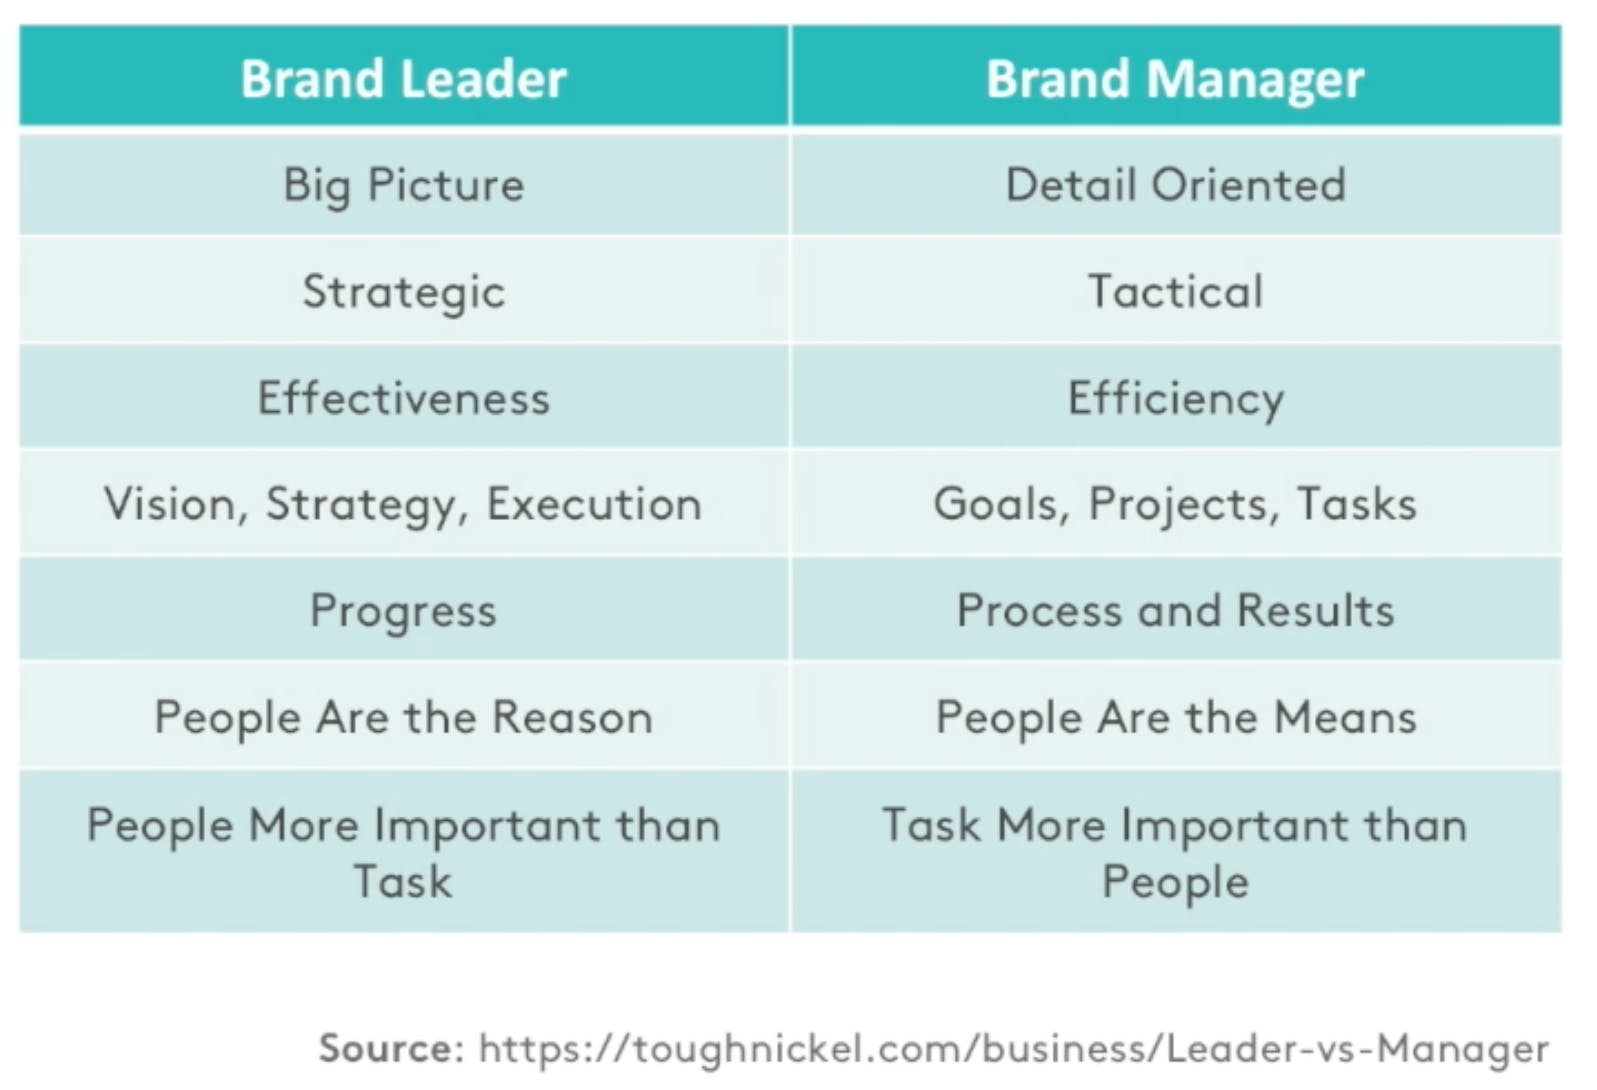 Difference brand leader vs. brand manager table